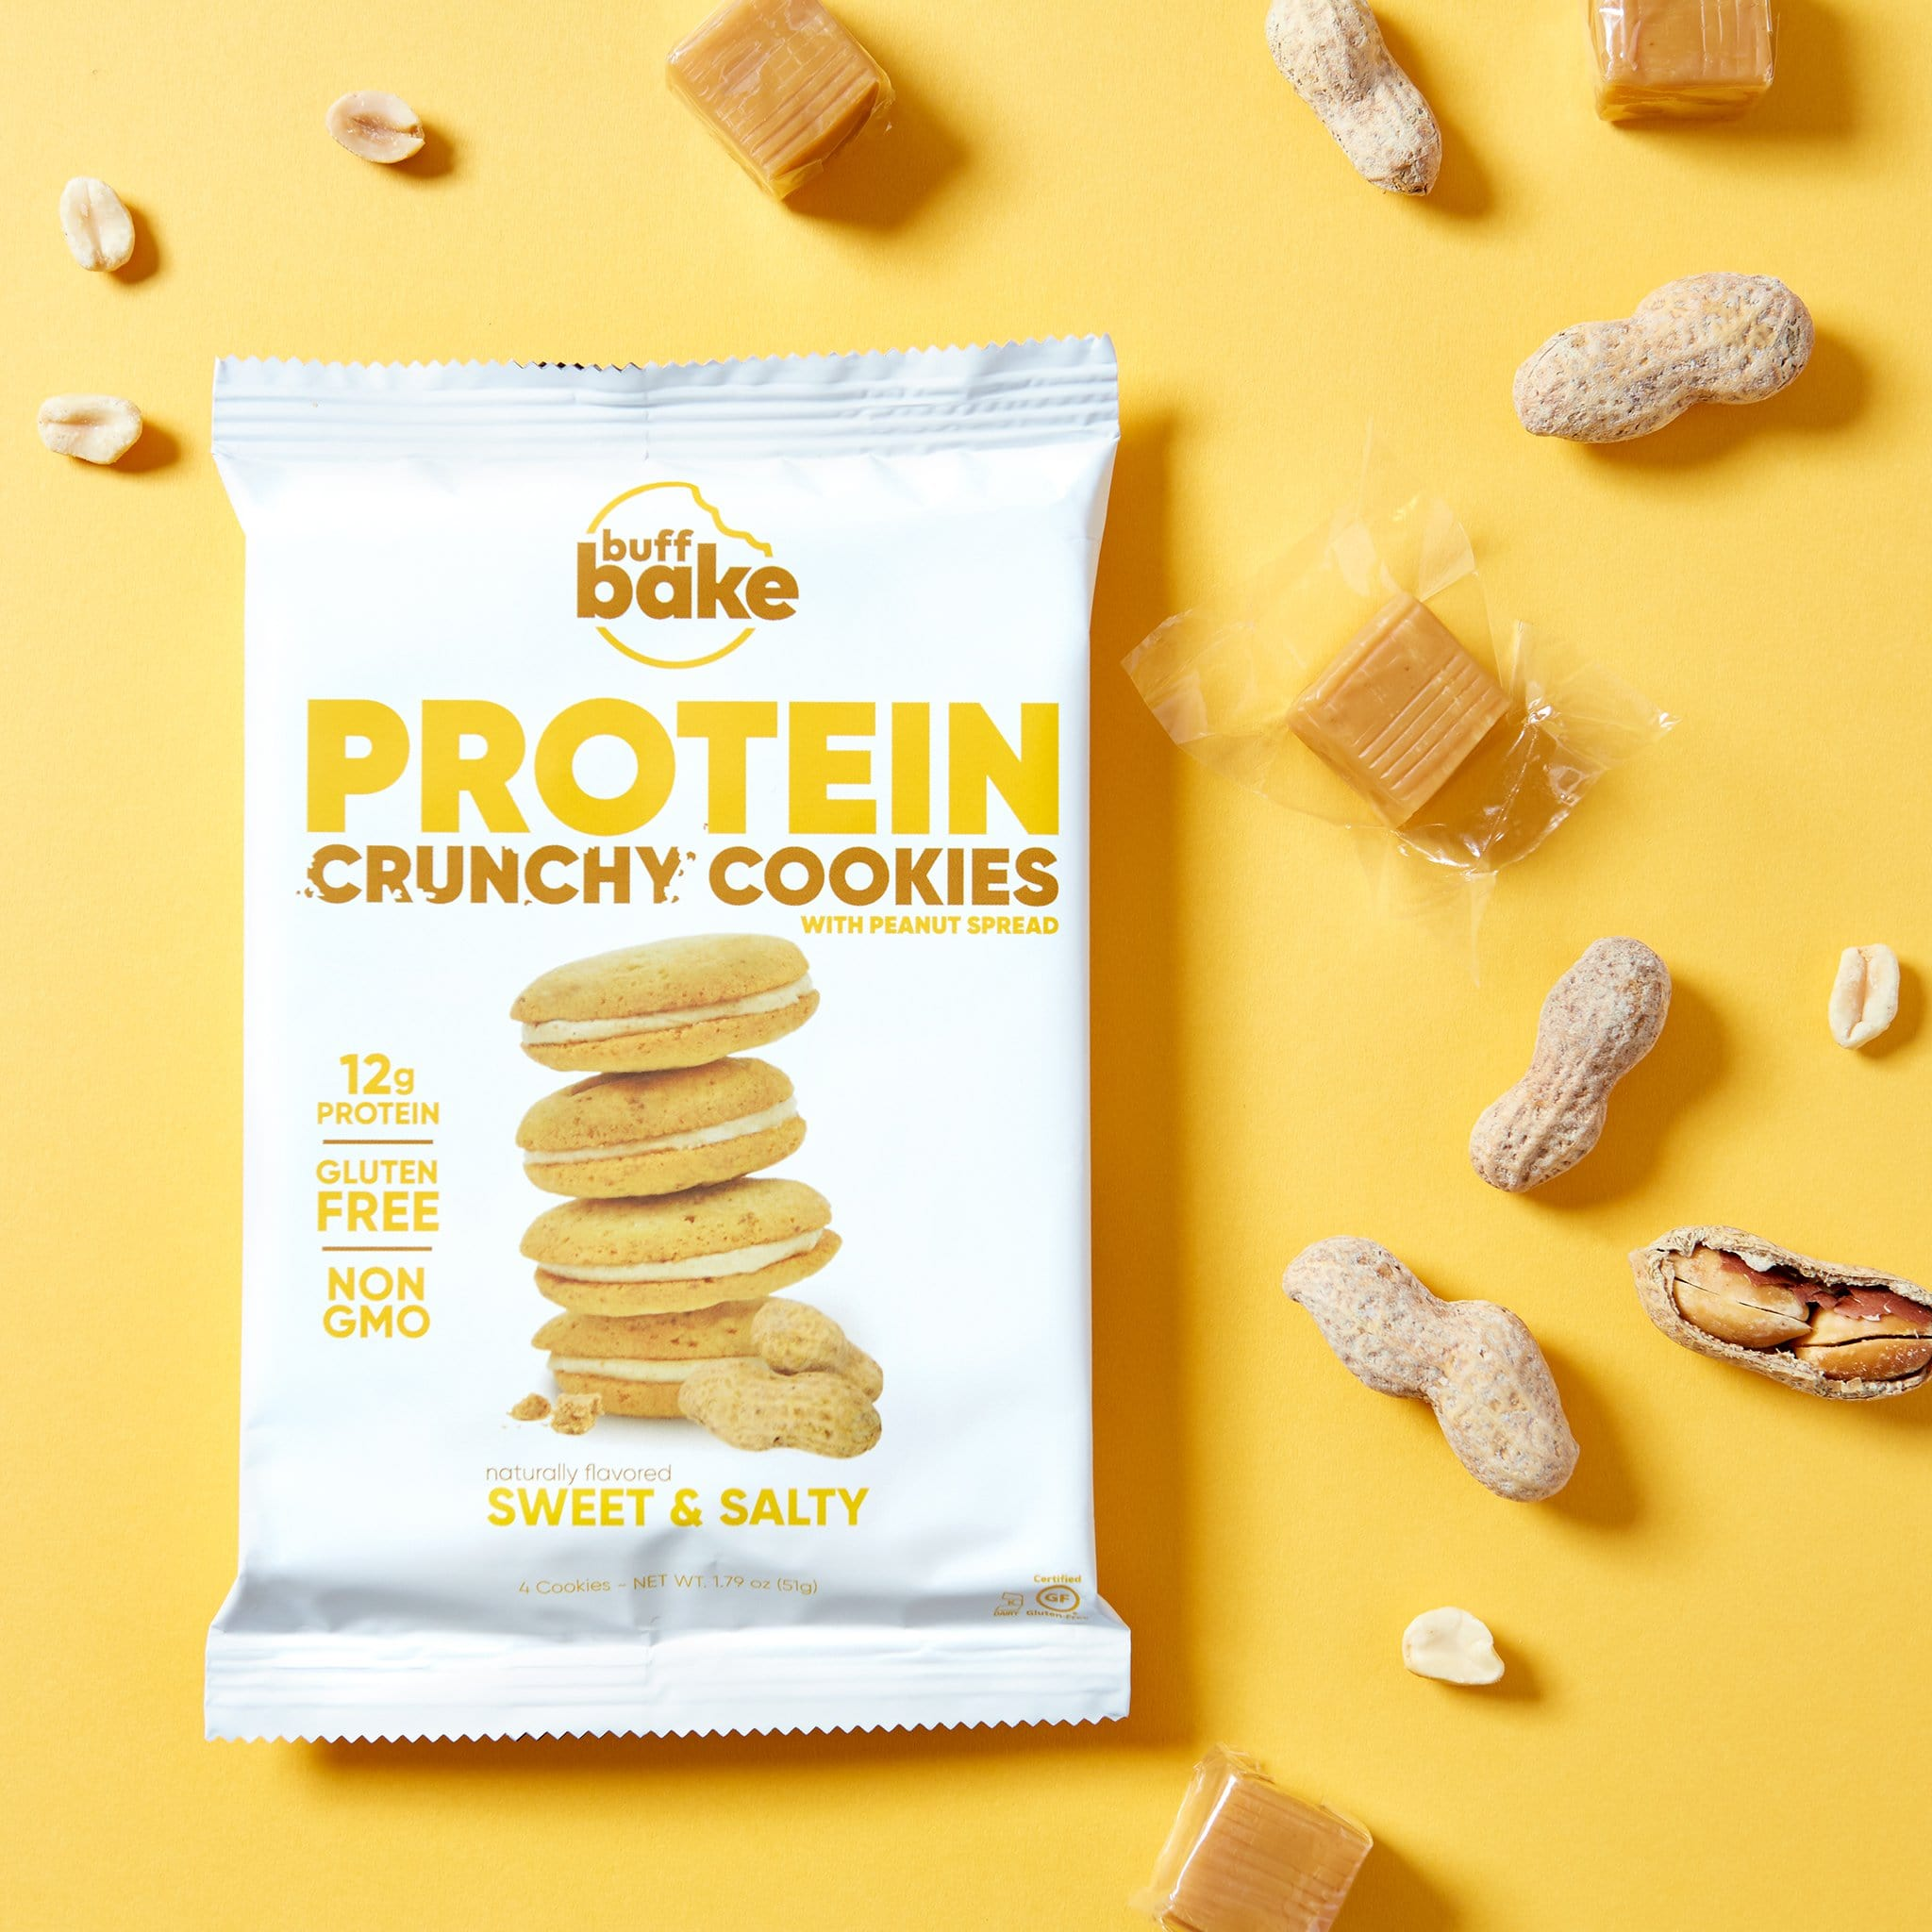 Buff Bake Crunchy Protein Sandwich Cookie Sweet And Salty Ingredients